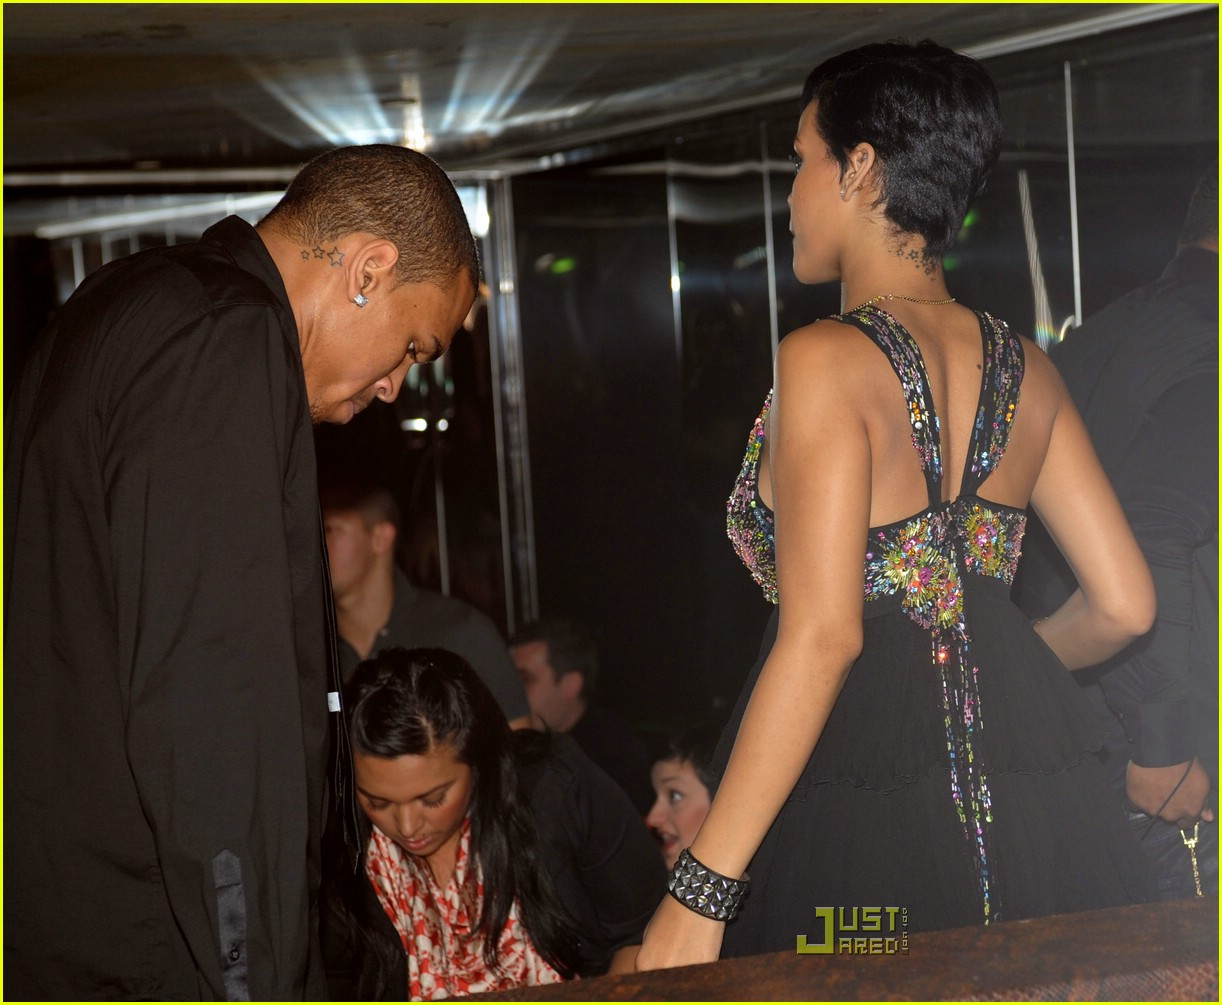 chris brown and rihanna 'it's horseplay' chris brown puts his hands around woman's neck – nine years after rihanna assault – but insists it's 'horseplay.